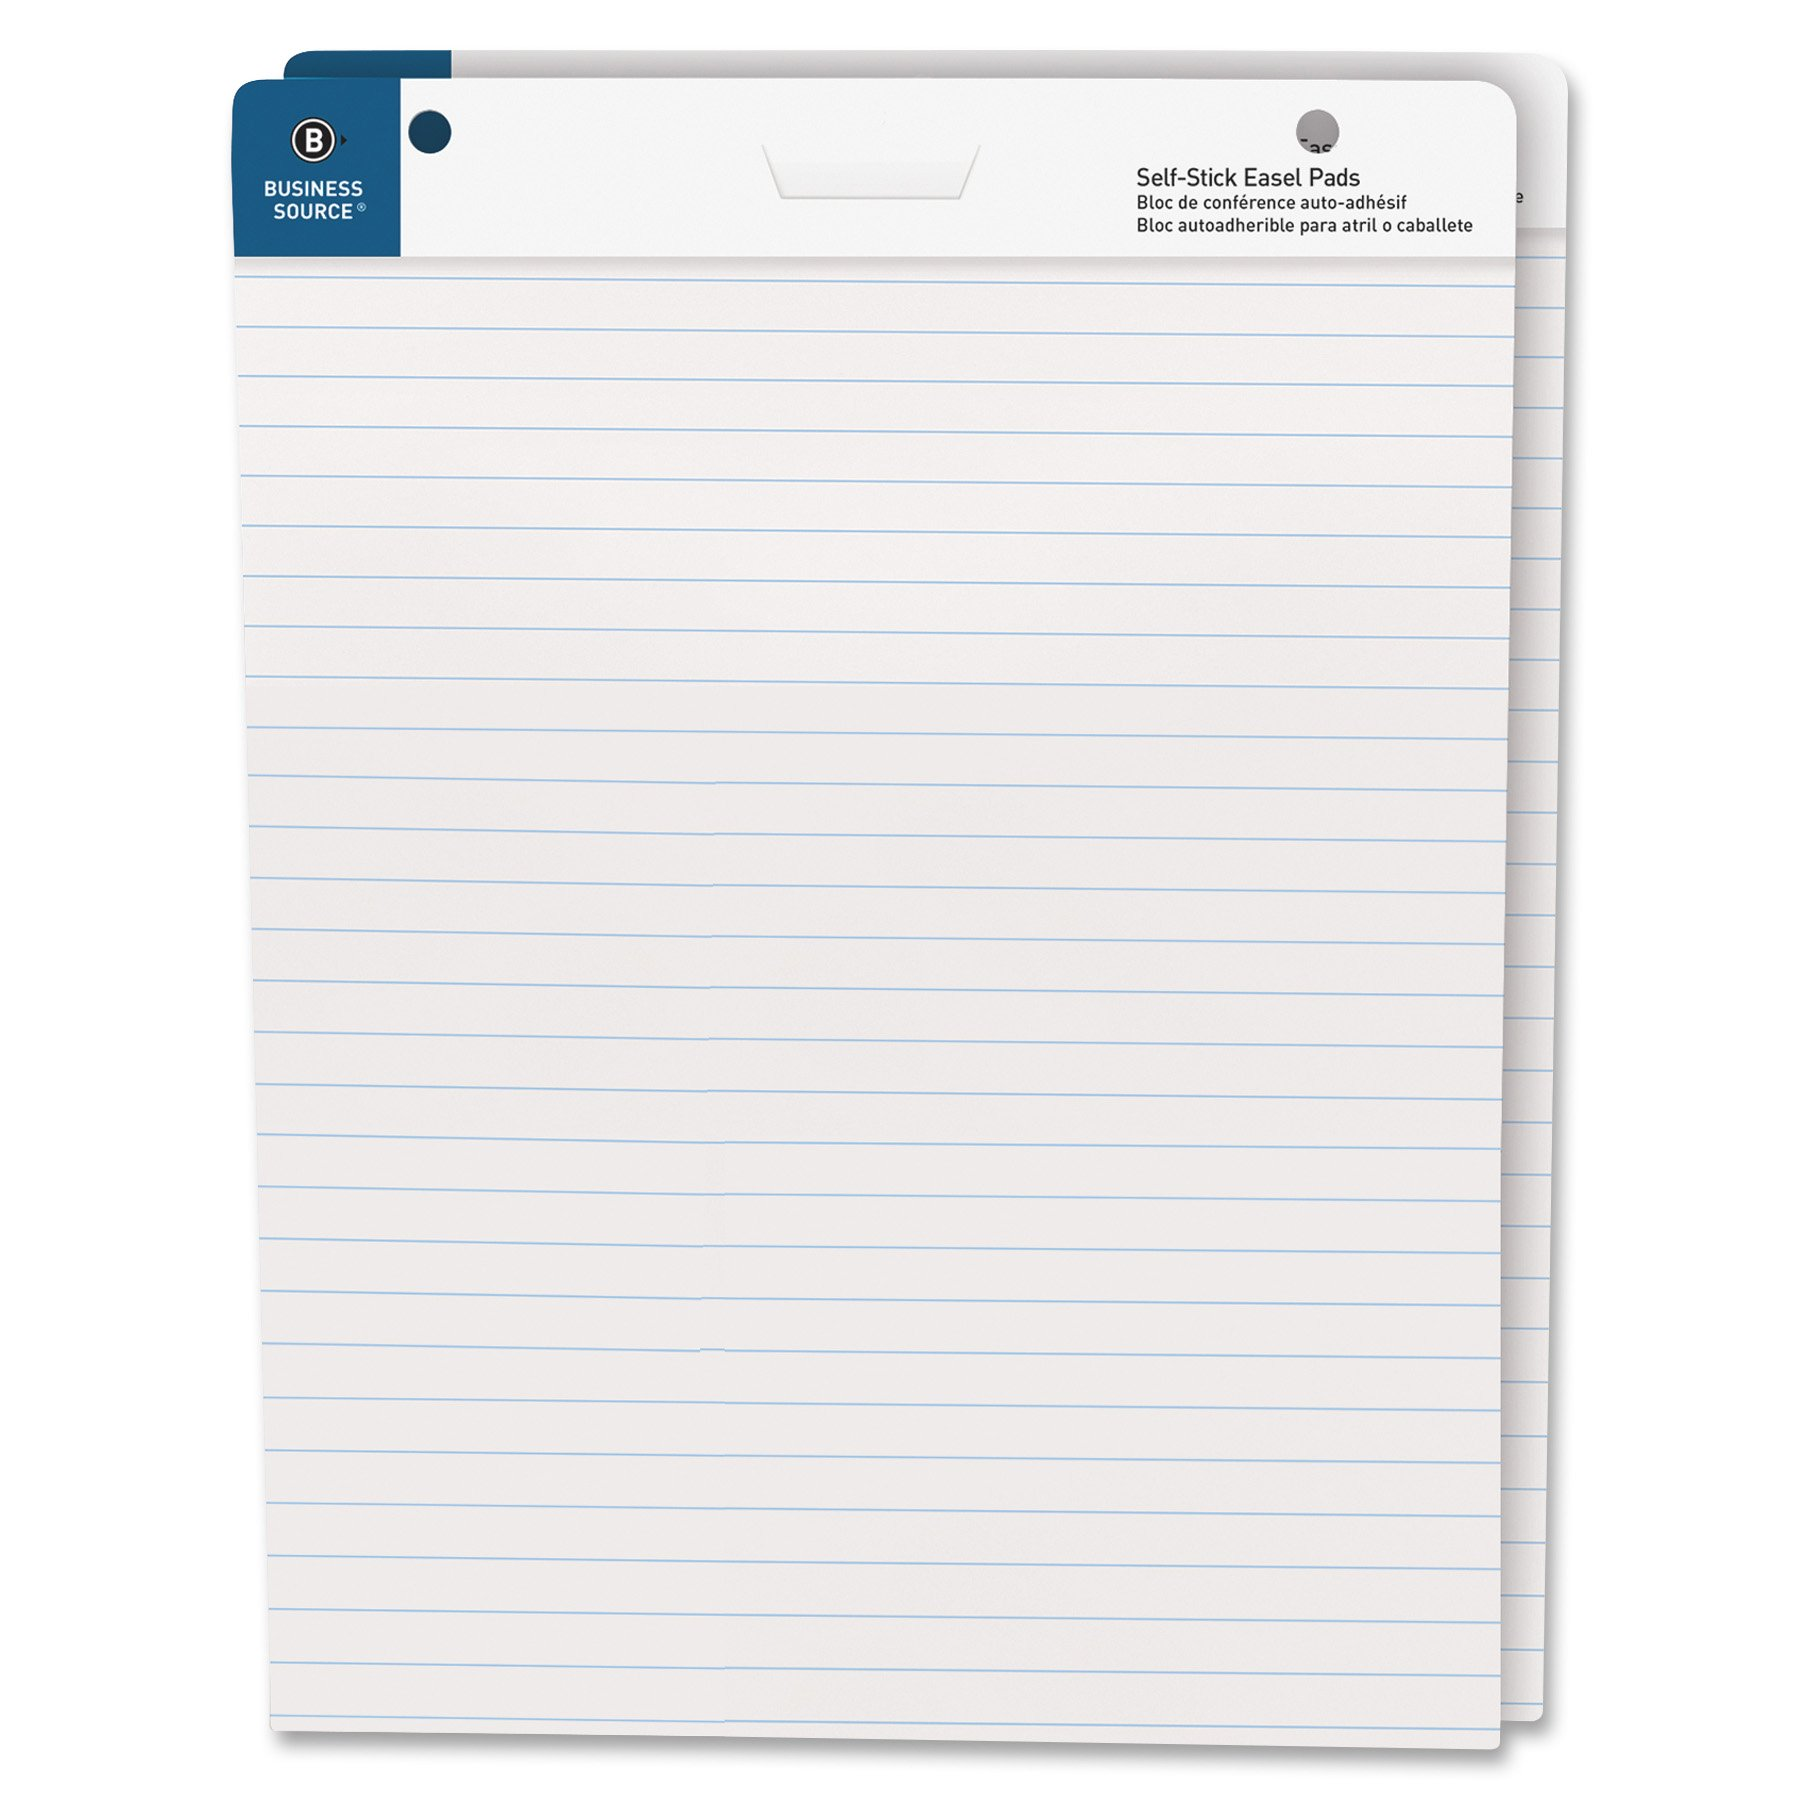 Business Source Paper Pads Easel Pad (38593) by Business Source